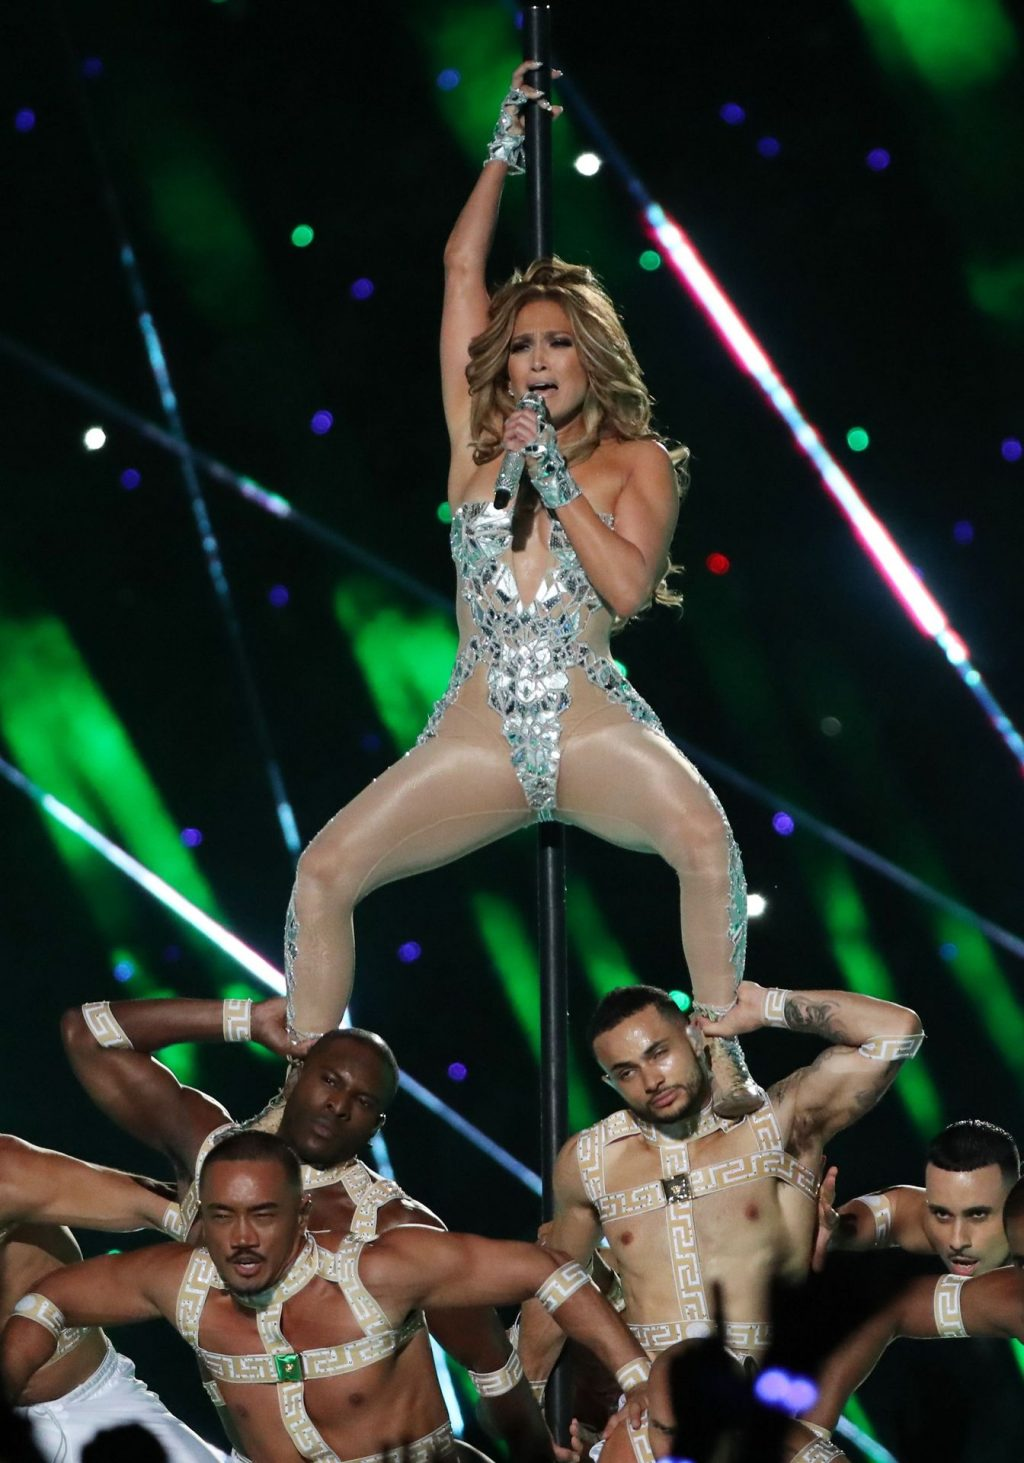 Sexy Jennifer Lopez and Shakira Perform at the Halftime Show in Super Bowl LIV (111 Photos + GIFs & Video)